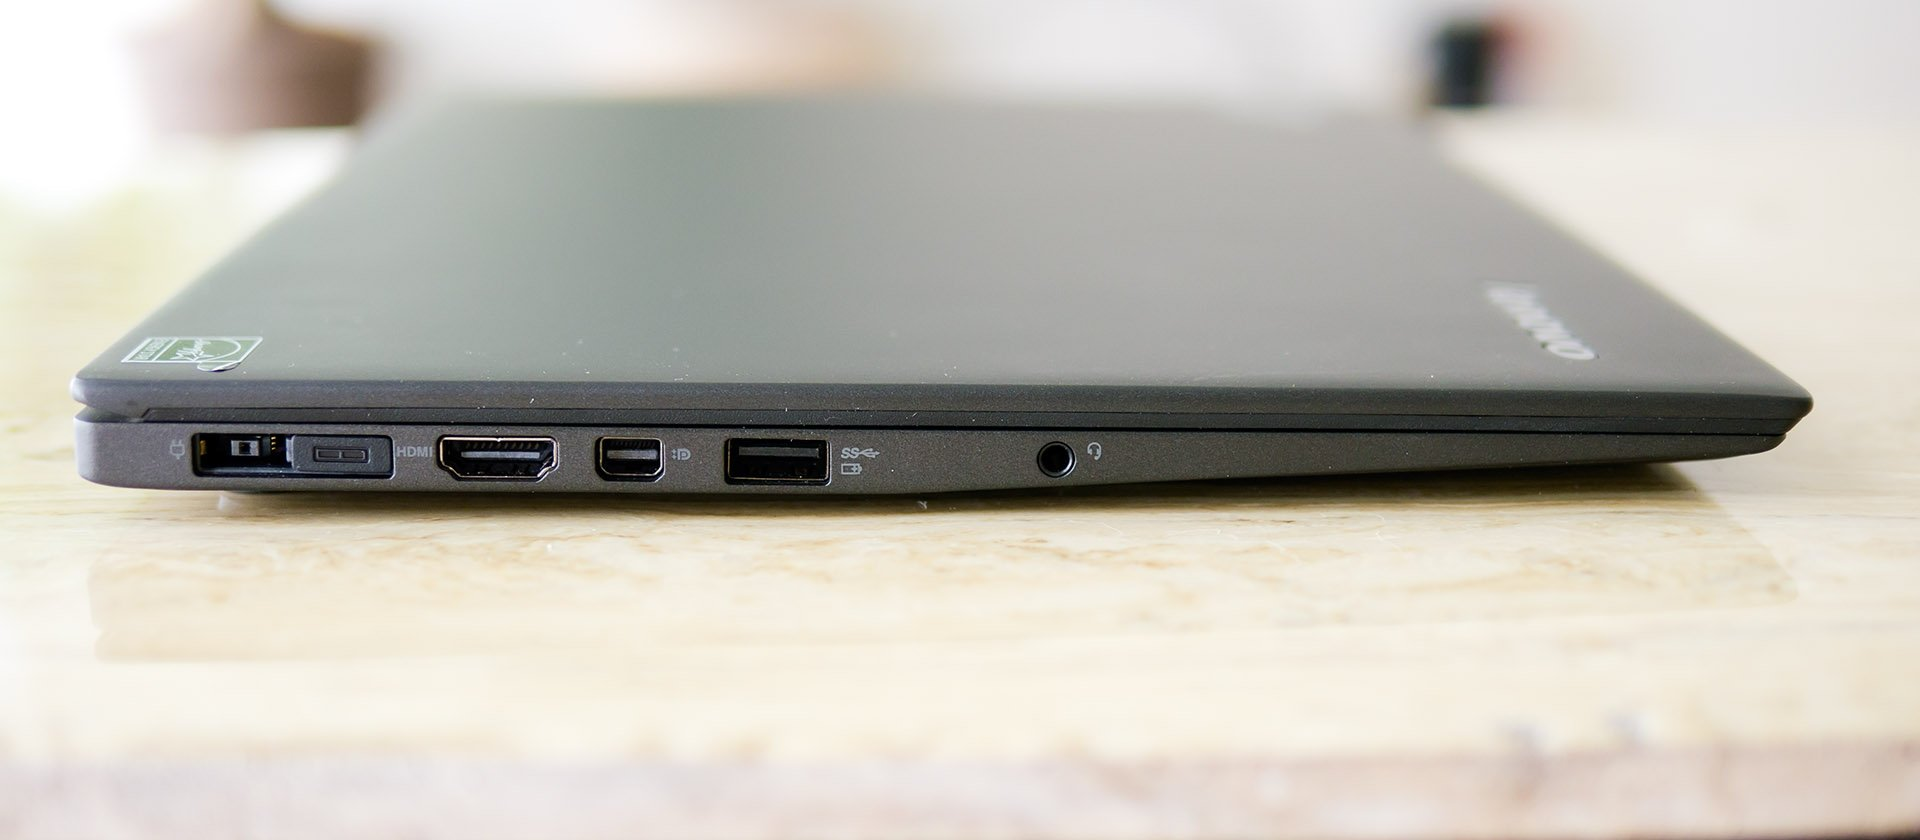 The Review49 Lenovo ThinkPad X1 Carbon 1920x840